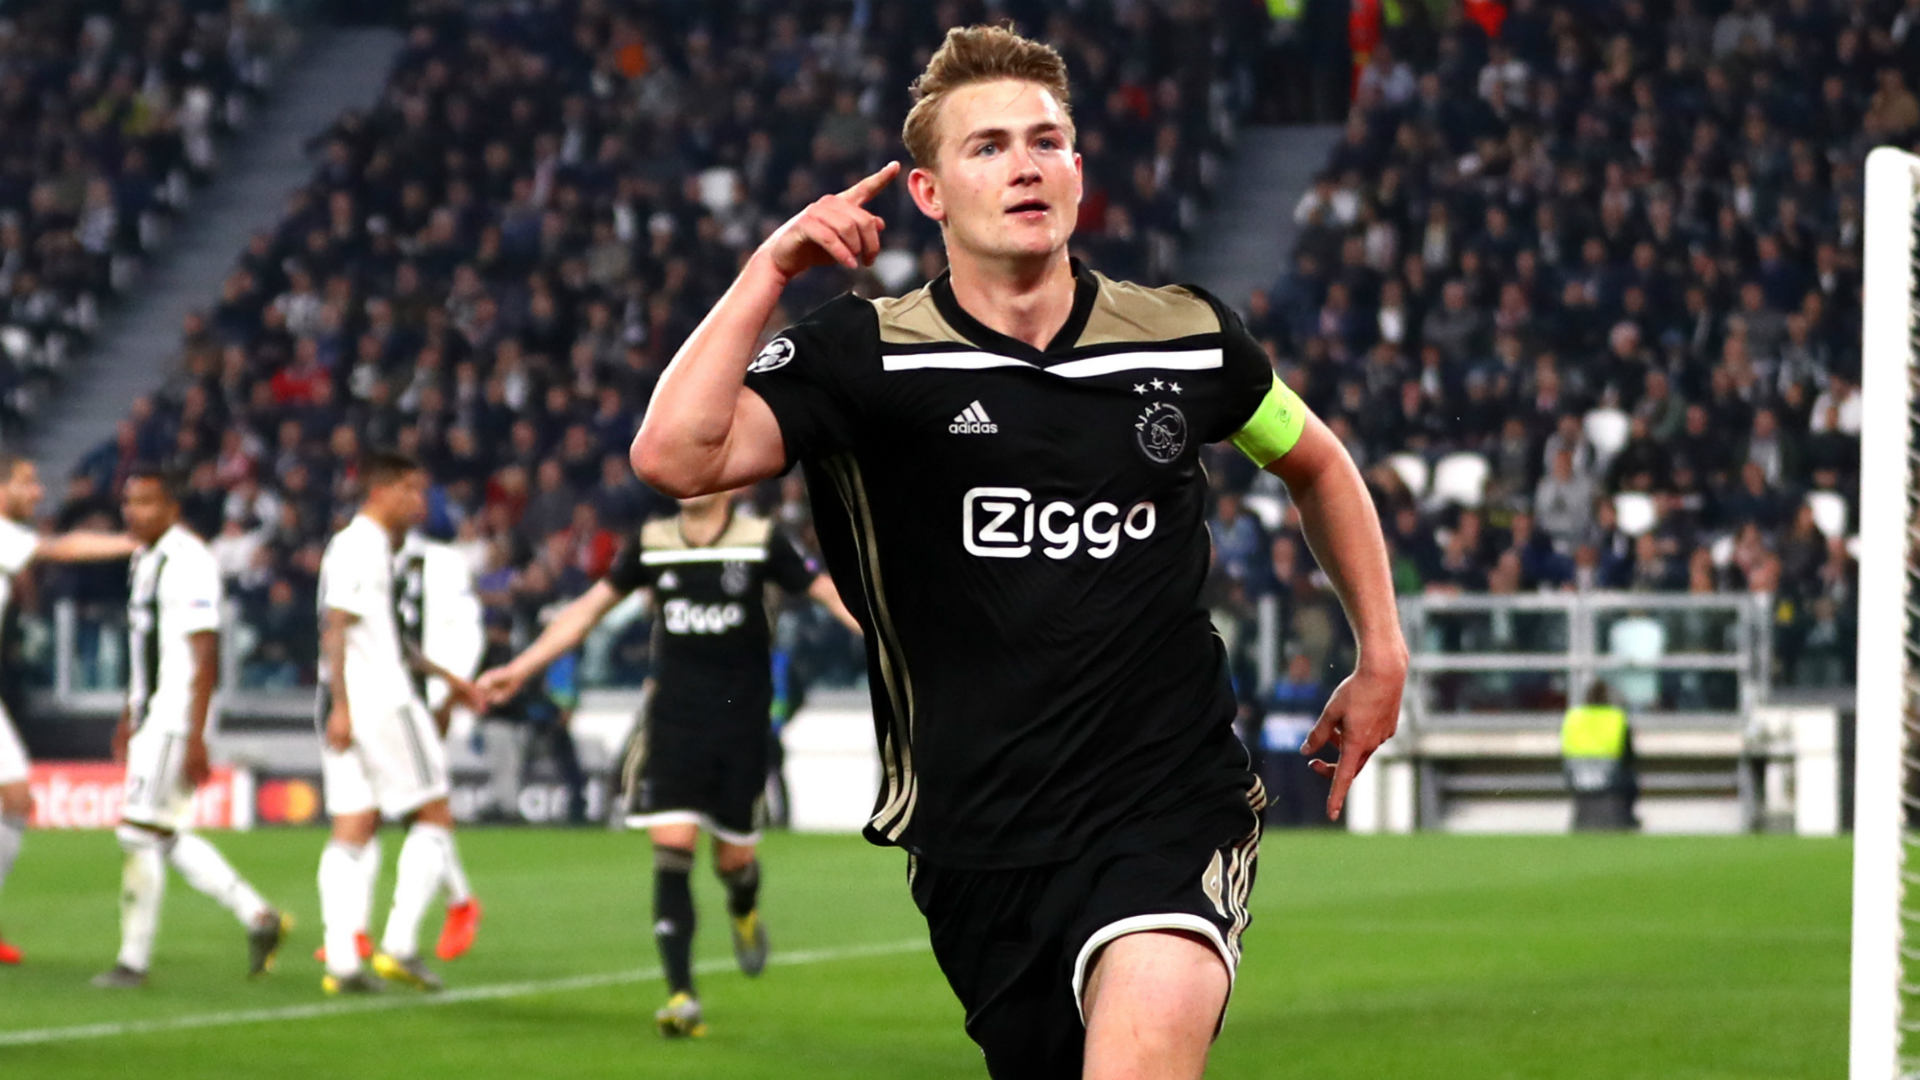 Raiola denies finalising PSG move for De Ligt